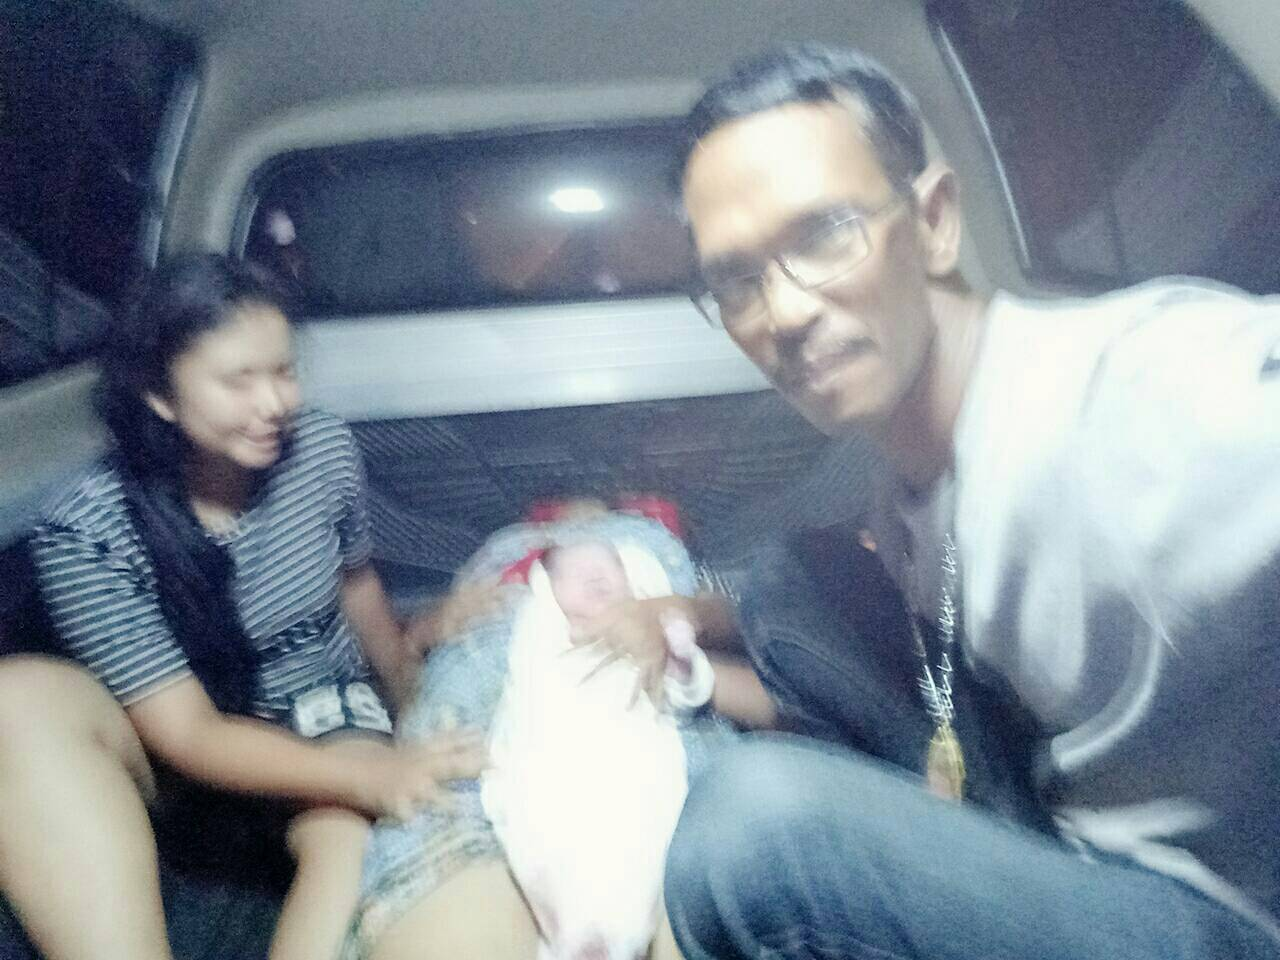 Rescue workers help mother give birth in Krabi | The Thaiger